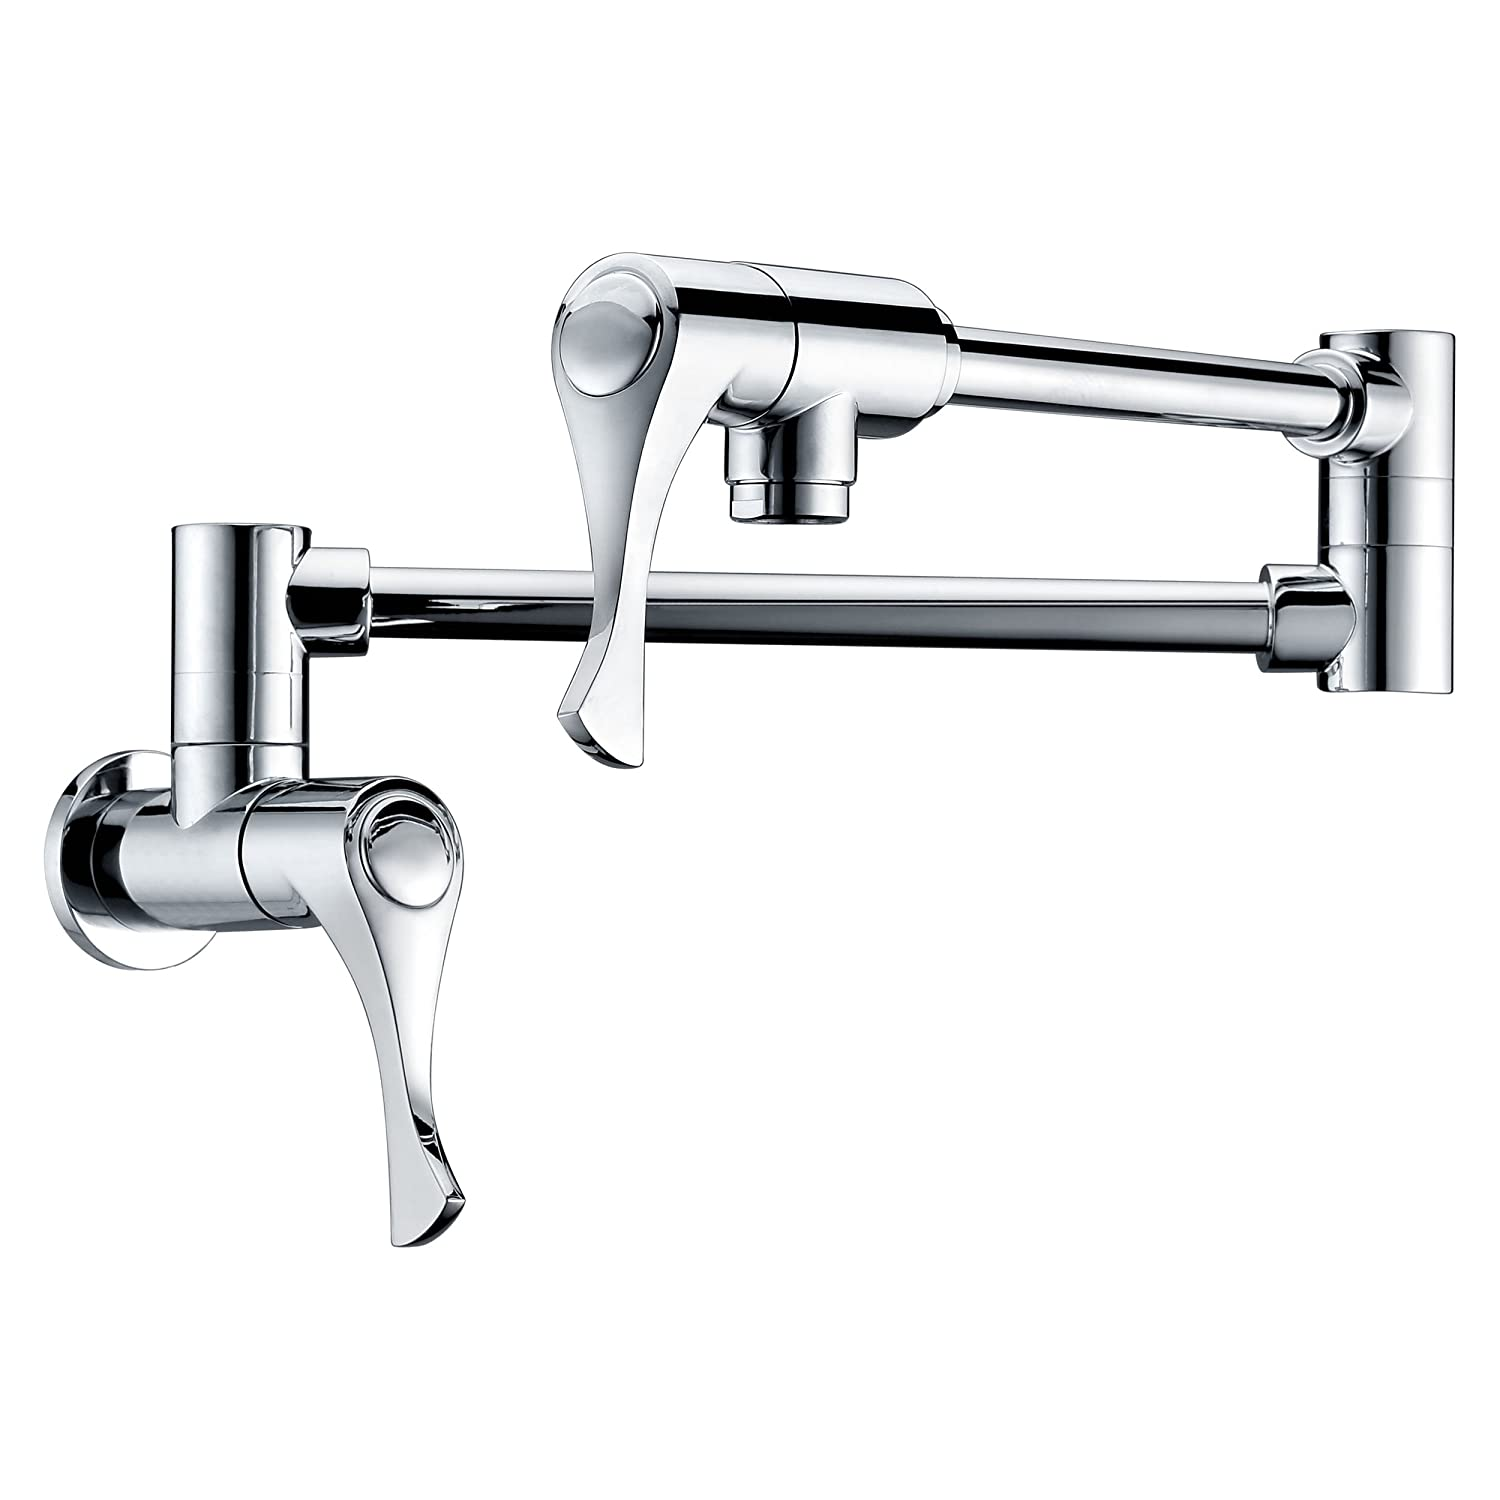 Dyconn Faucet WPF06-CHR Contemporary Modern Coosa Retractable Modern Wall Mount Pot Filler Faucet